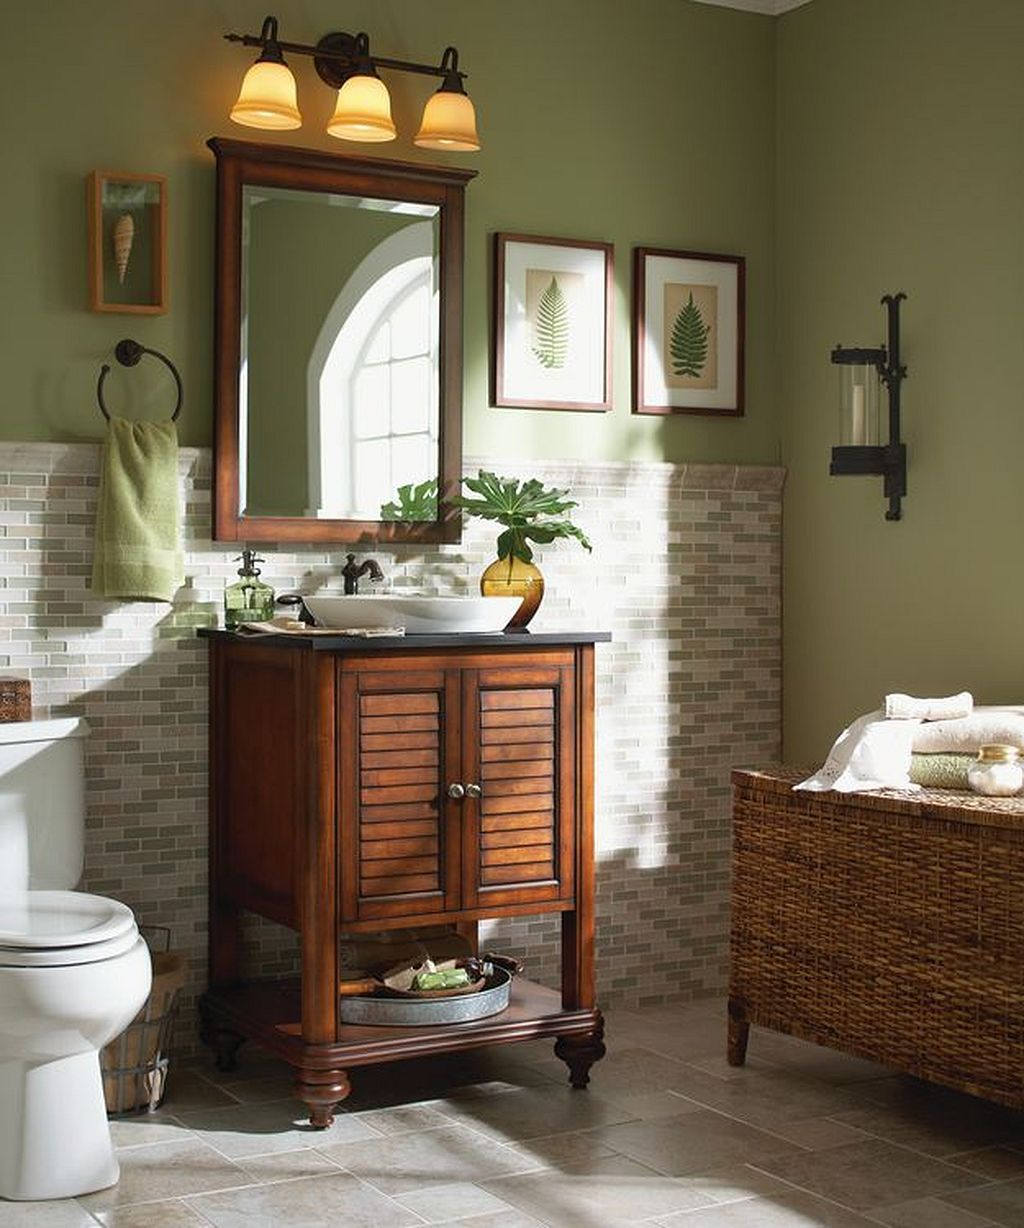 Hawaiian Home Design Ideas: 30+ Tropical Bathroom Decor In 2020